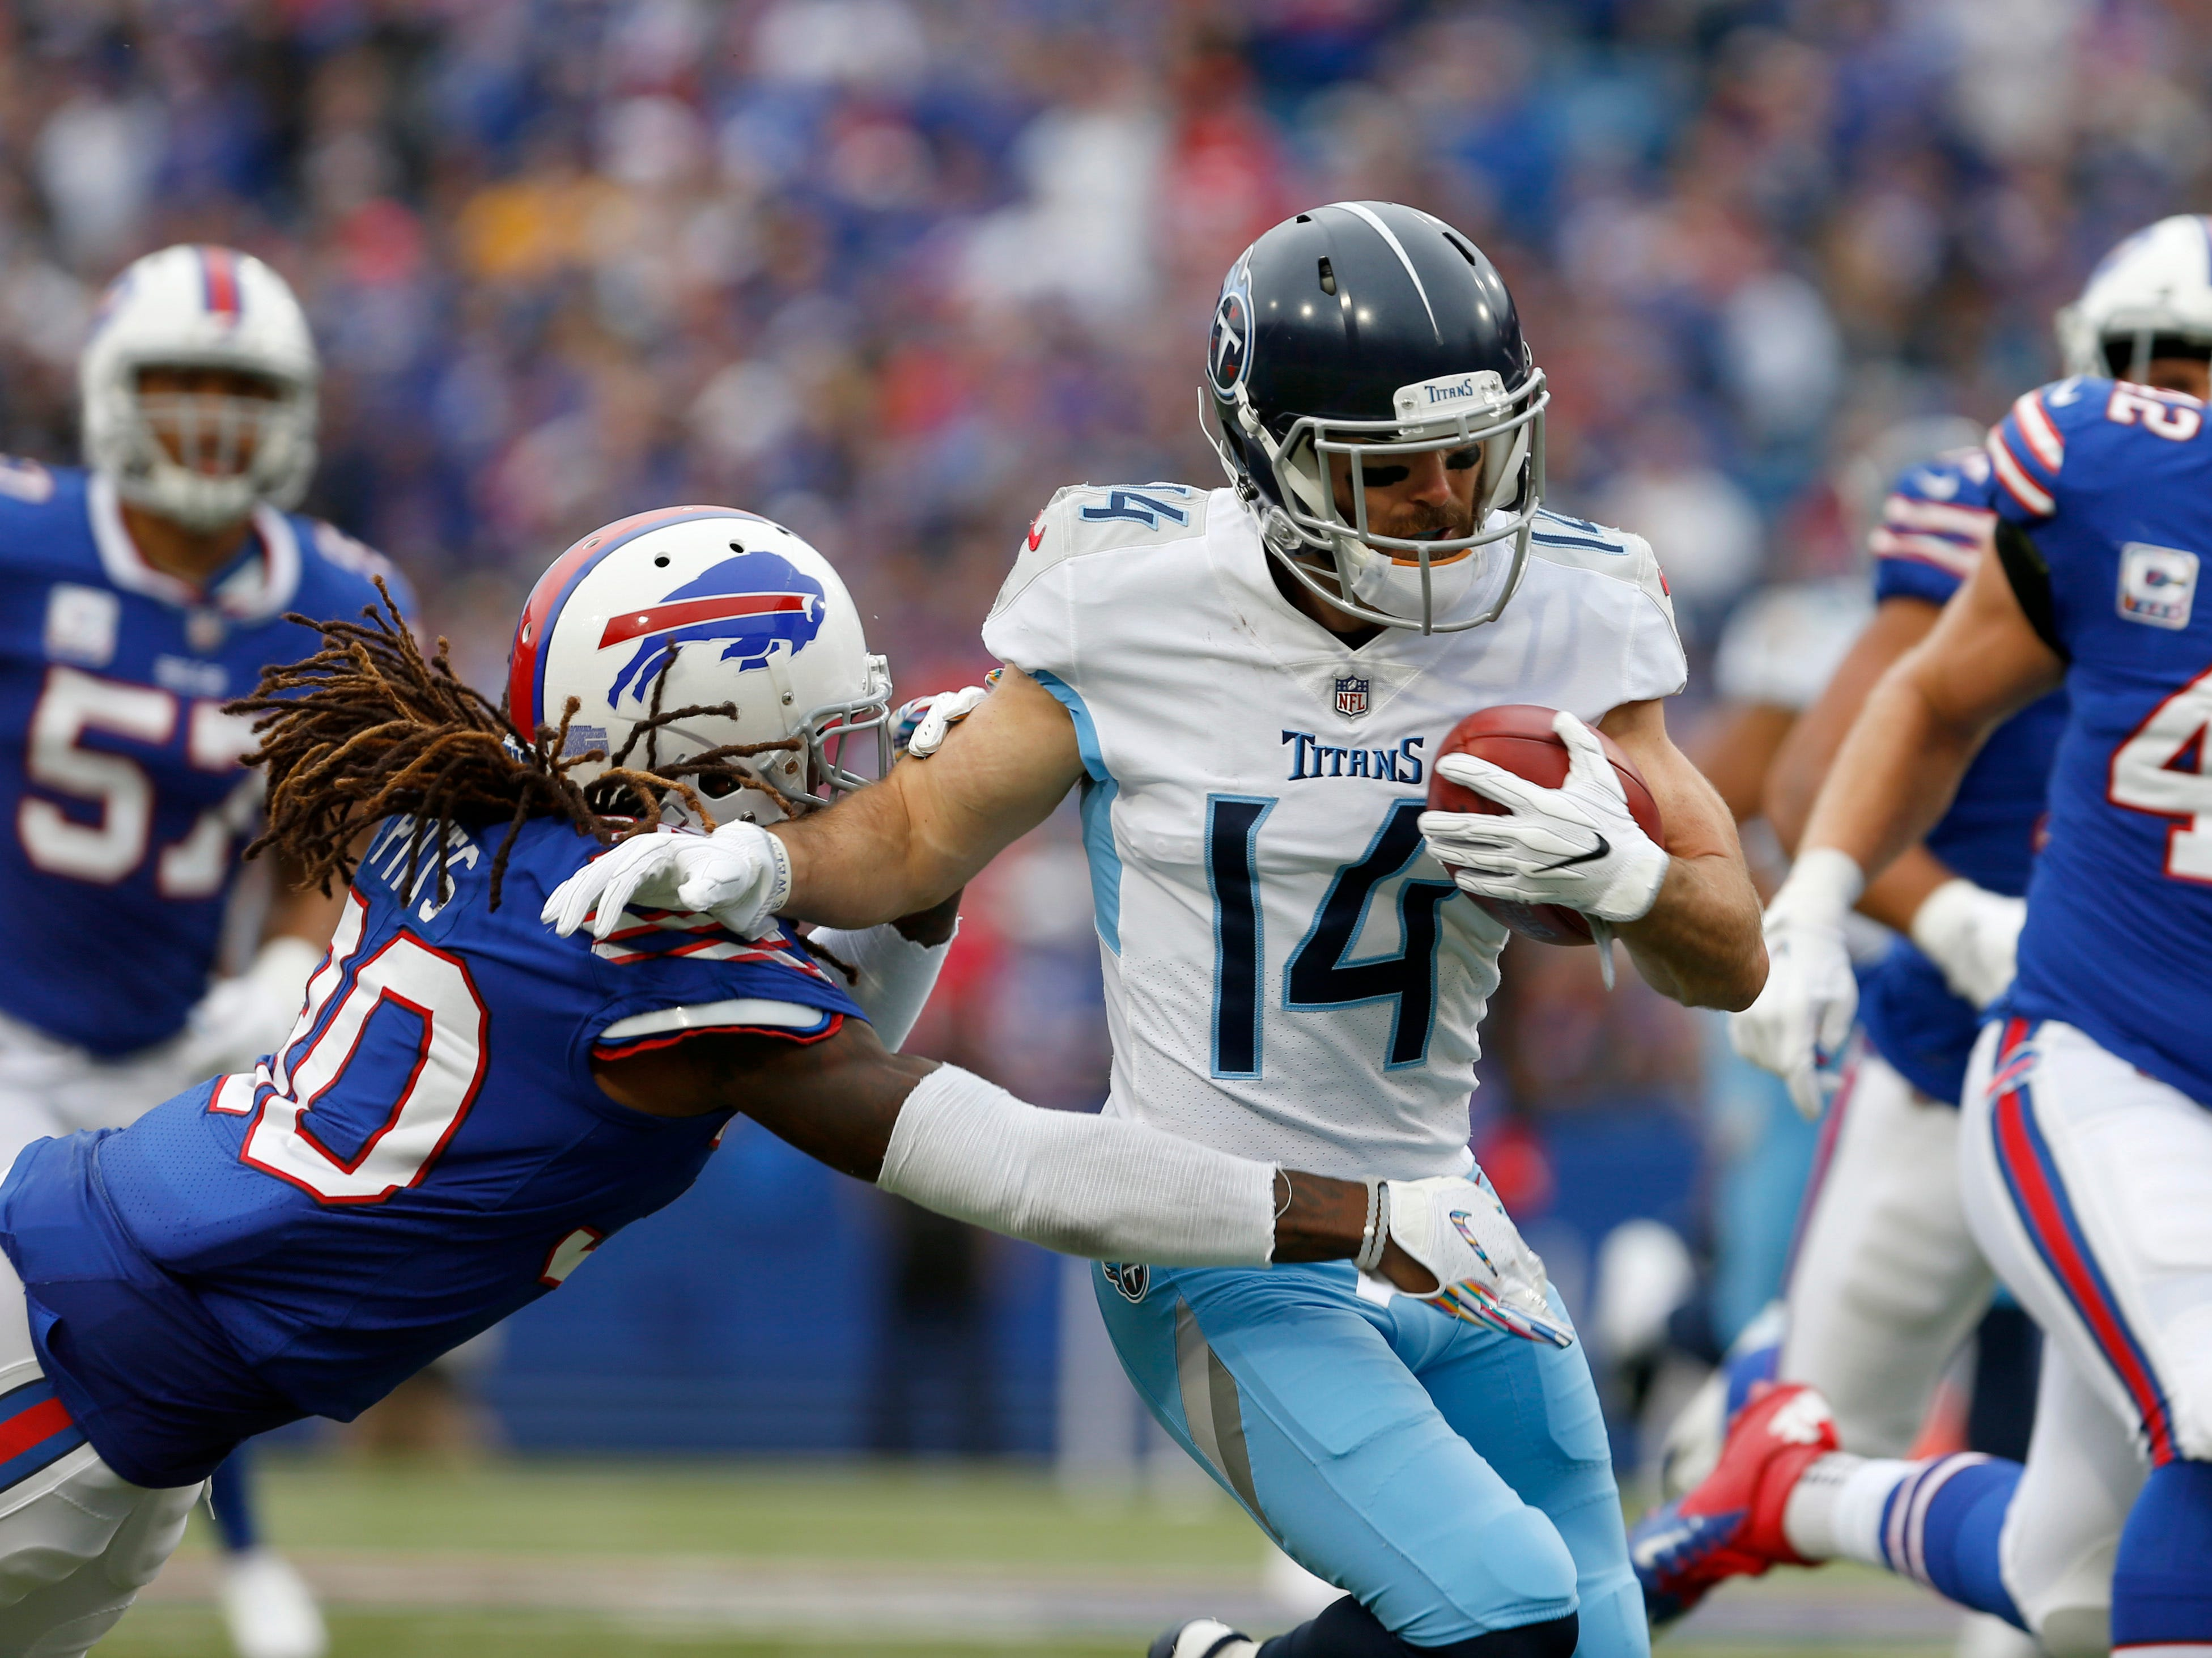 Oct 7, 2018; Orchard Park, NY, USA; Tennessee Titans wide receiver Nick Williams (14) as he runs back the ball against Buffalo Bills cornerback Lafayette Pitts (30) during the first half at New Era Field.